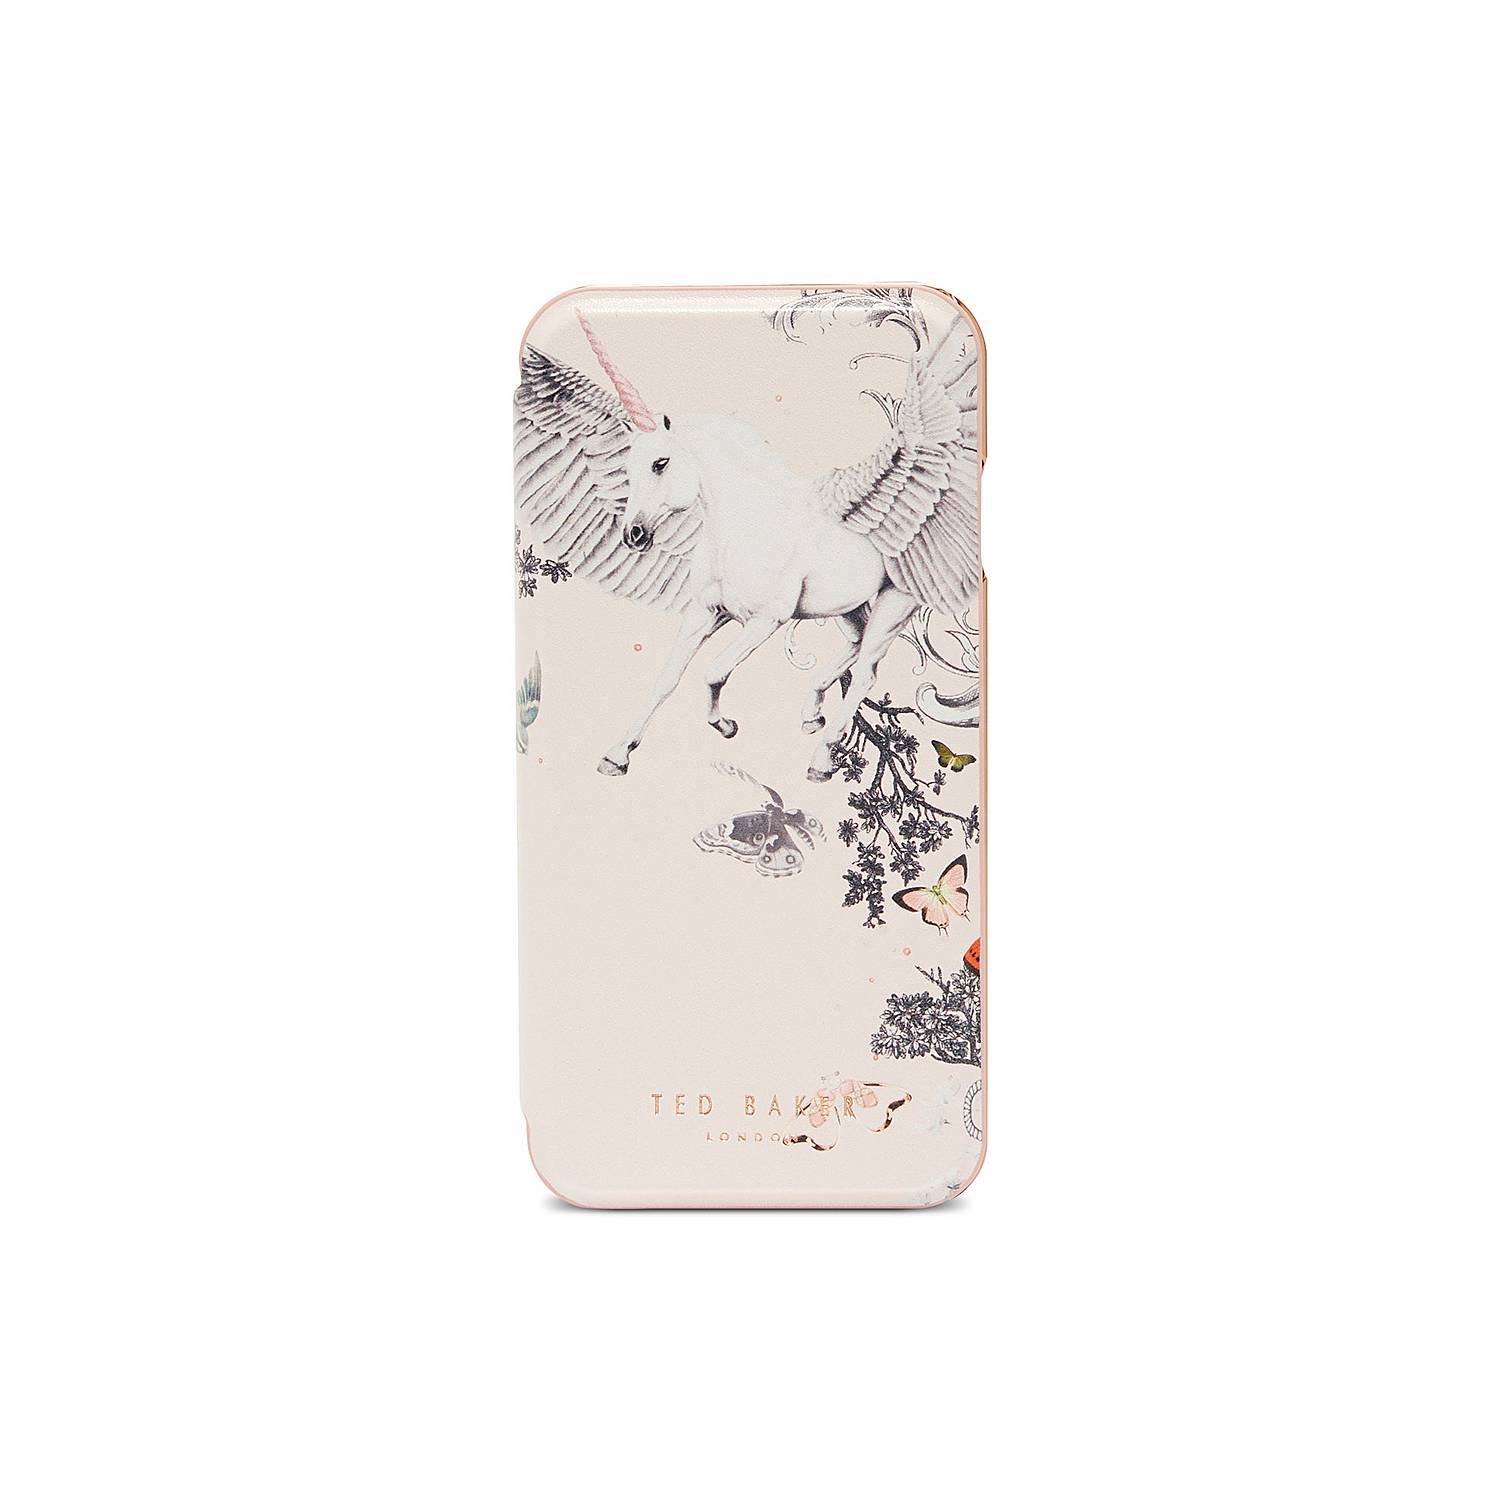 separation shoes 1b19a 1154d Ted Baker Enchanted Dream iPhone Case | Brown Thomas